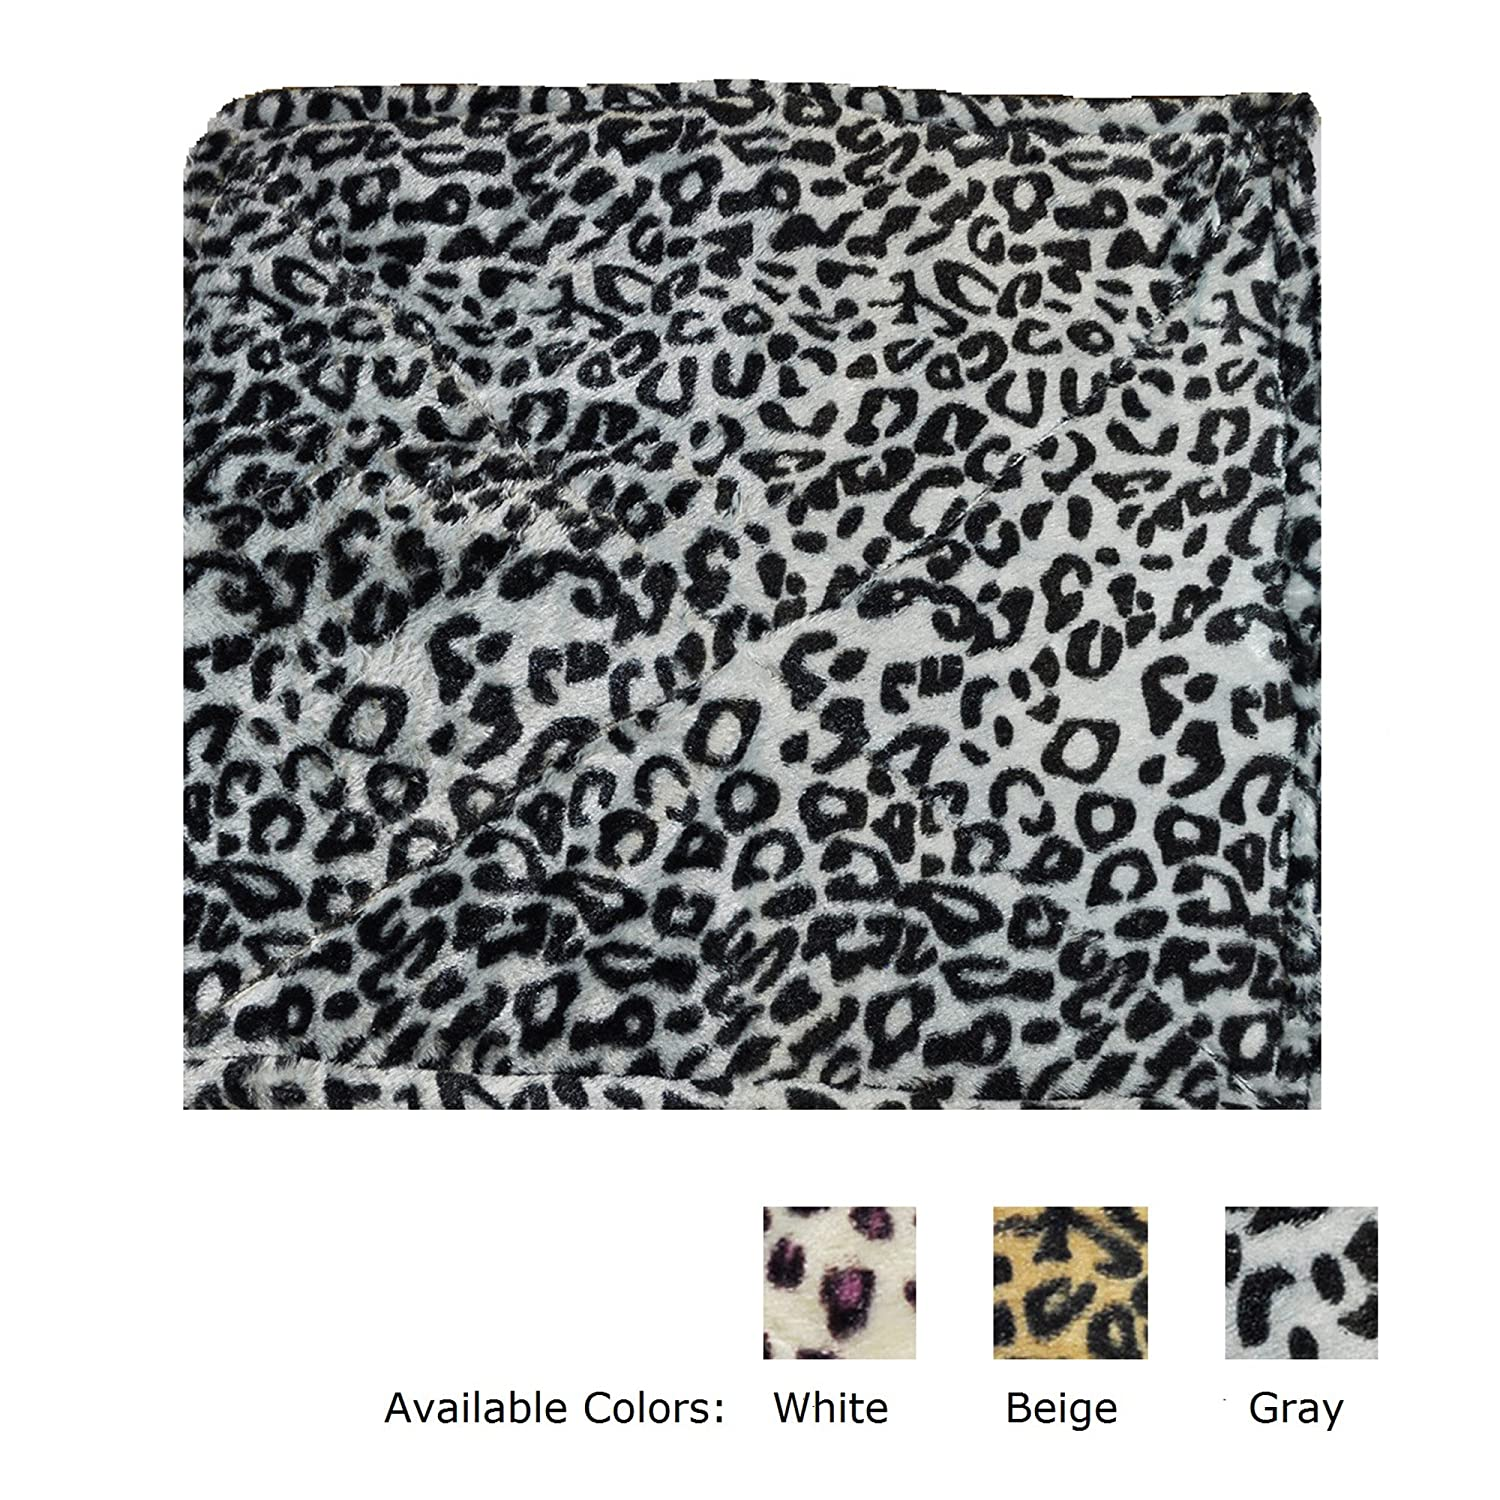 Thermal Cat Pet Dog Warming Bed Mat - BEIGE, BLUE, or GREY (Leopard Motif) 22 L x 19 W, by Downtown Pet Supply (White) by Downtown Pet Supply WhiteThermalDTPS